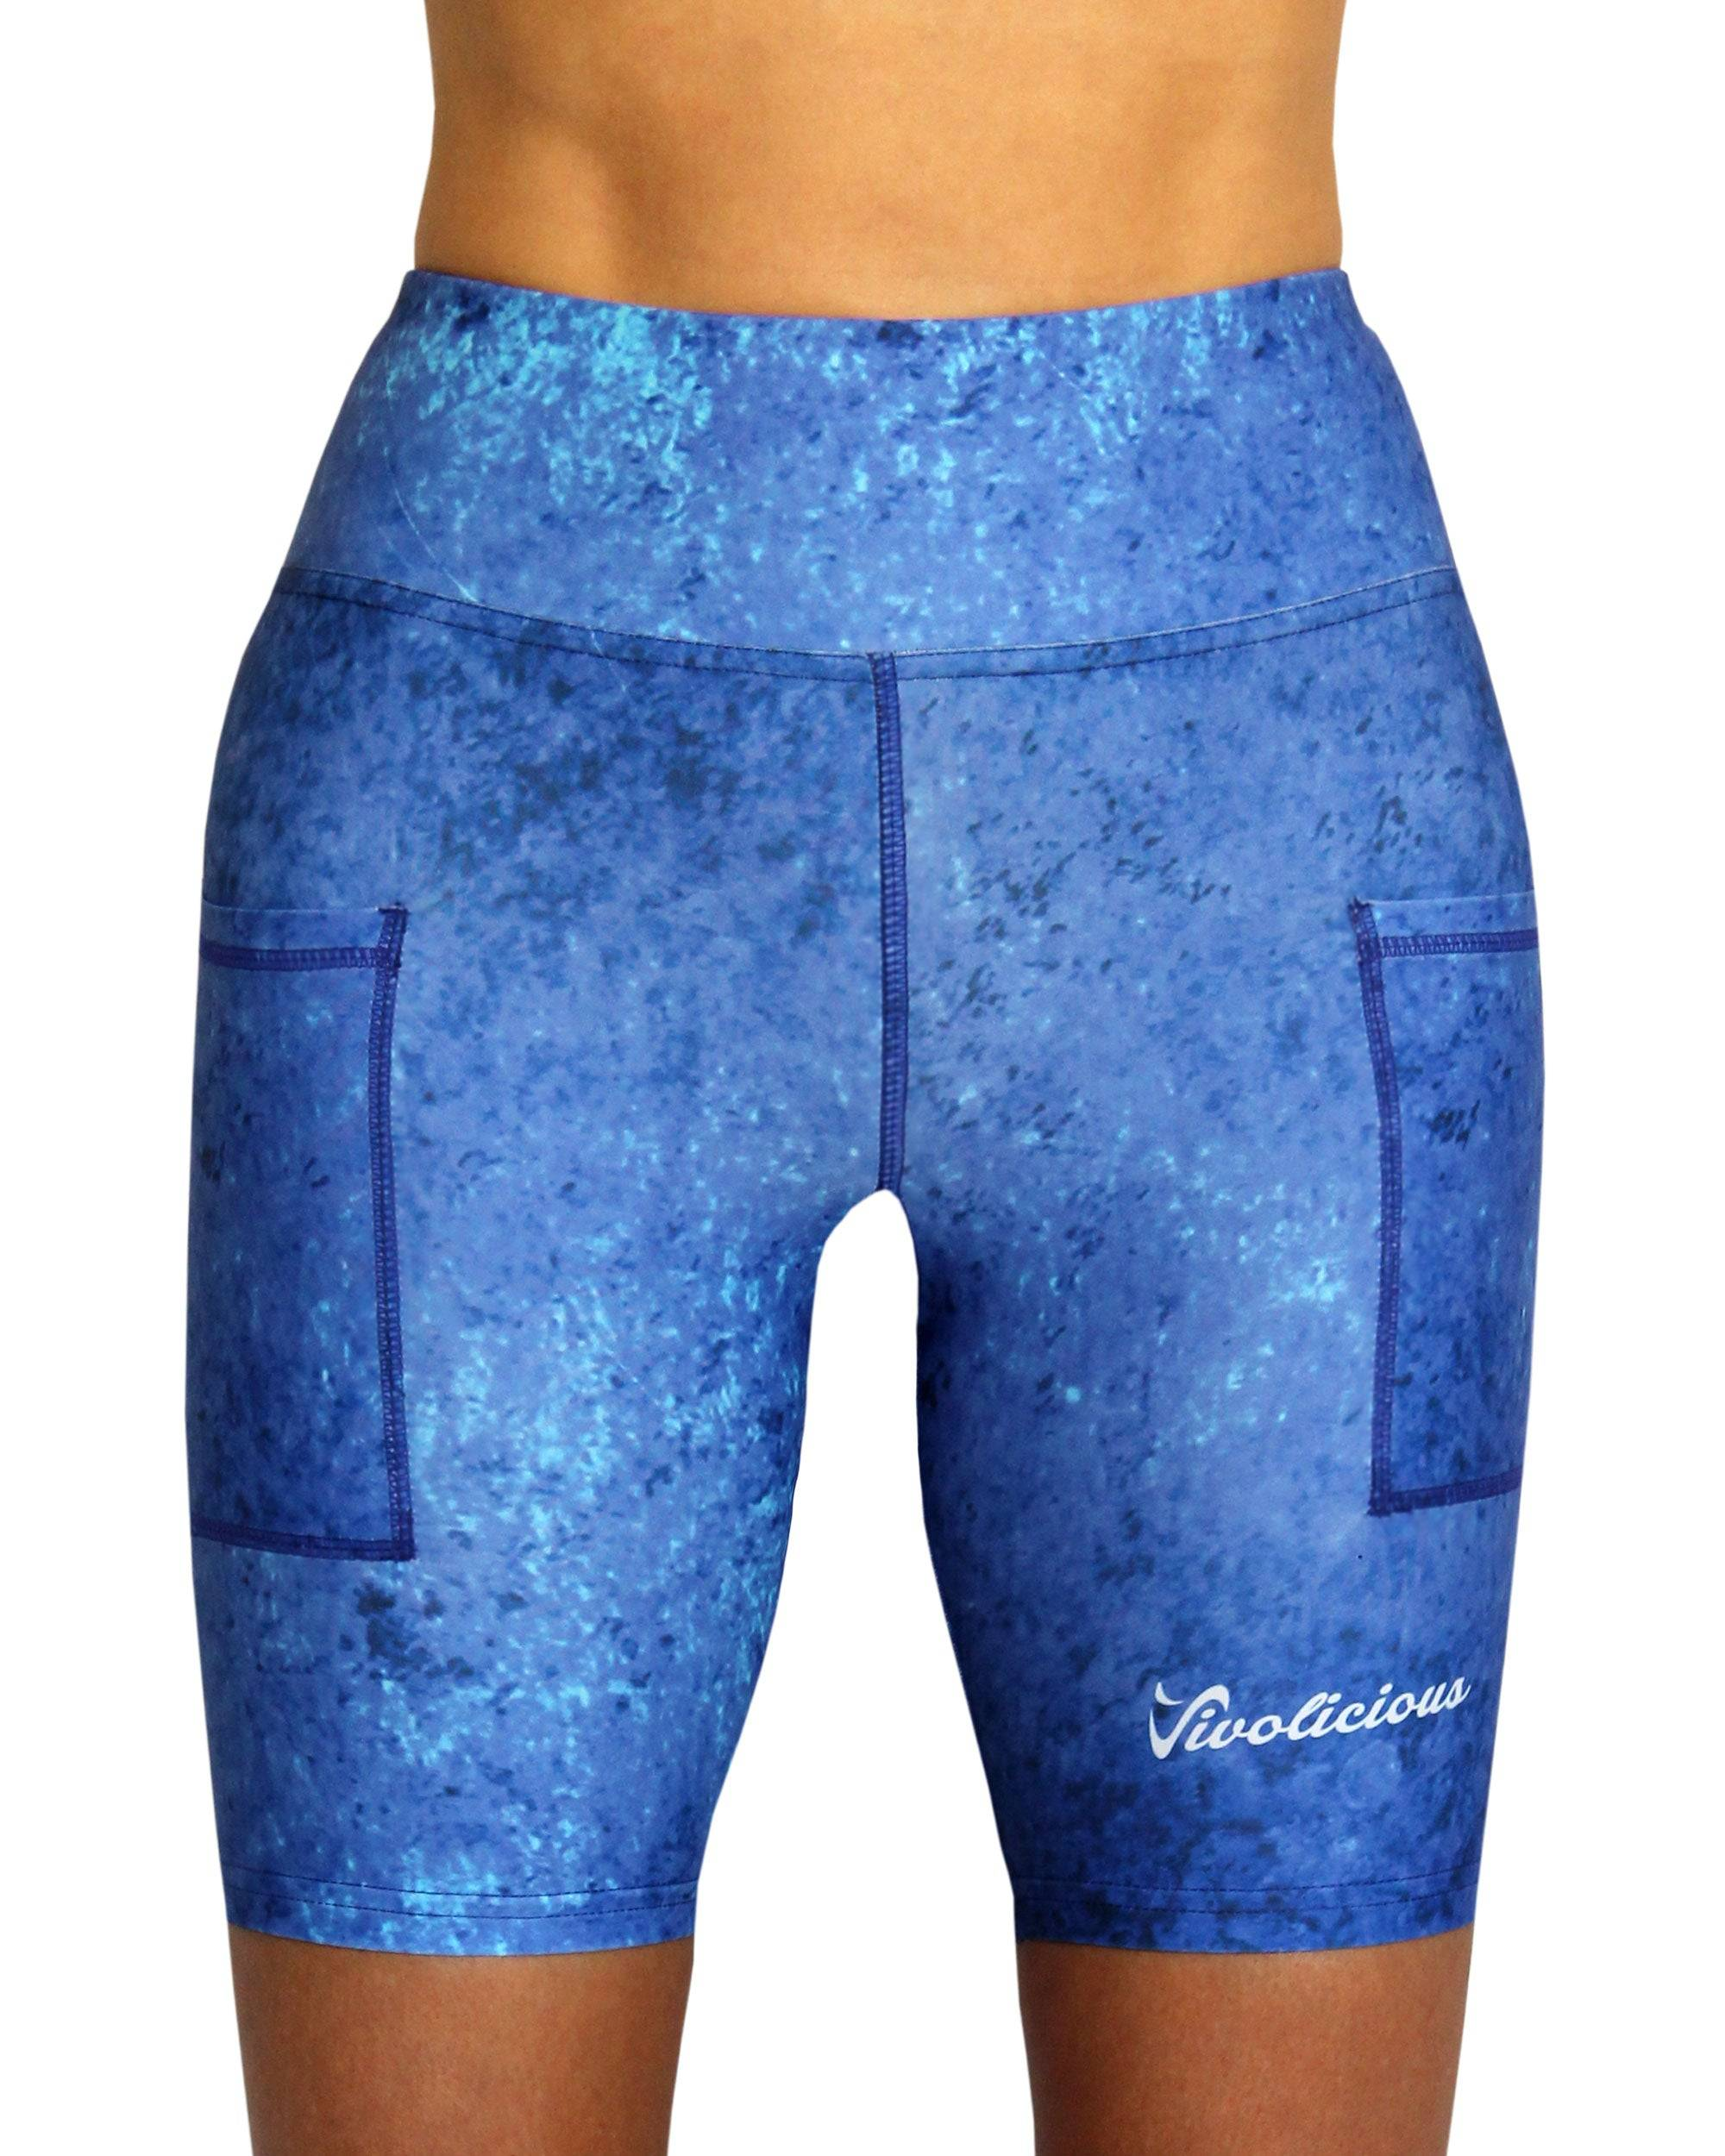 Vivolicious CLUB BLUE Tech Shorts PRE-ORDER for OUT OF STOCK SIZES